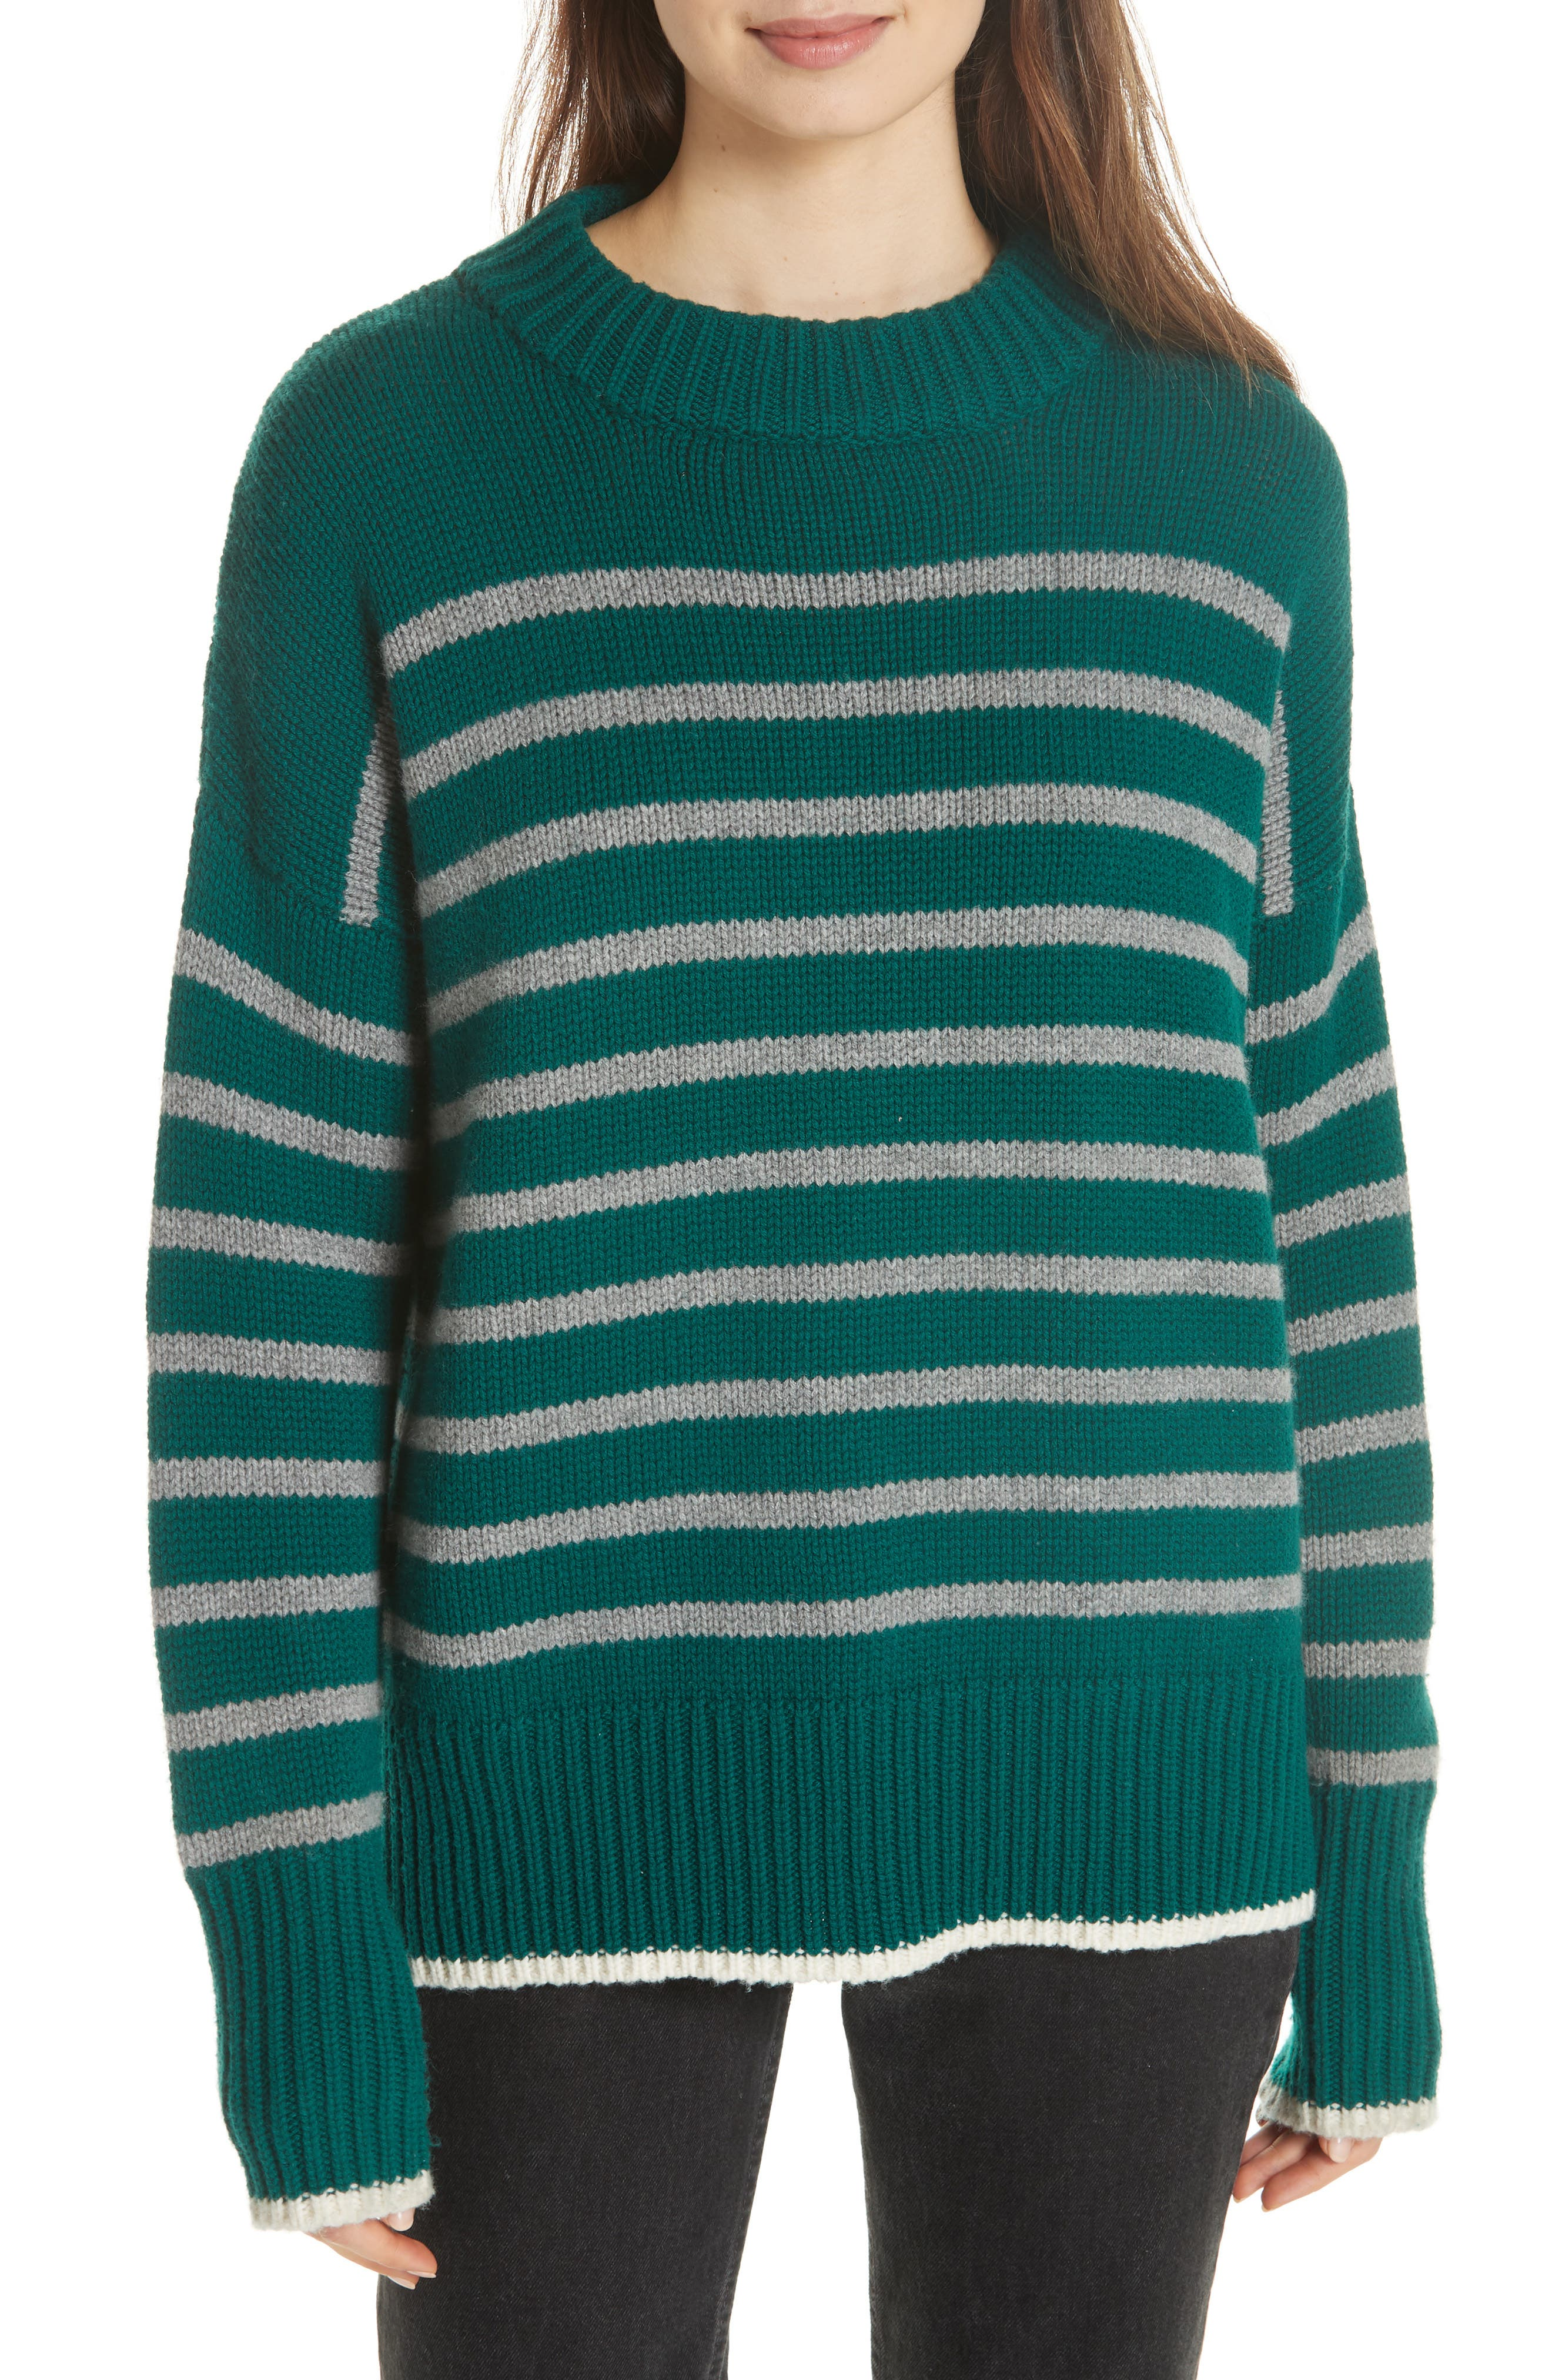 Marin Wool & Cashmere Sweater,                             Main thumbnail 1, color,                             FOREST GREEN/ GREY MARLE